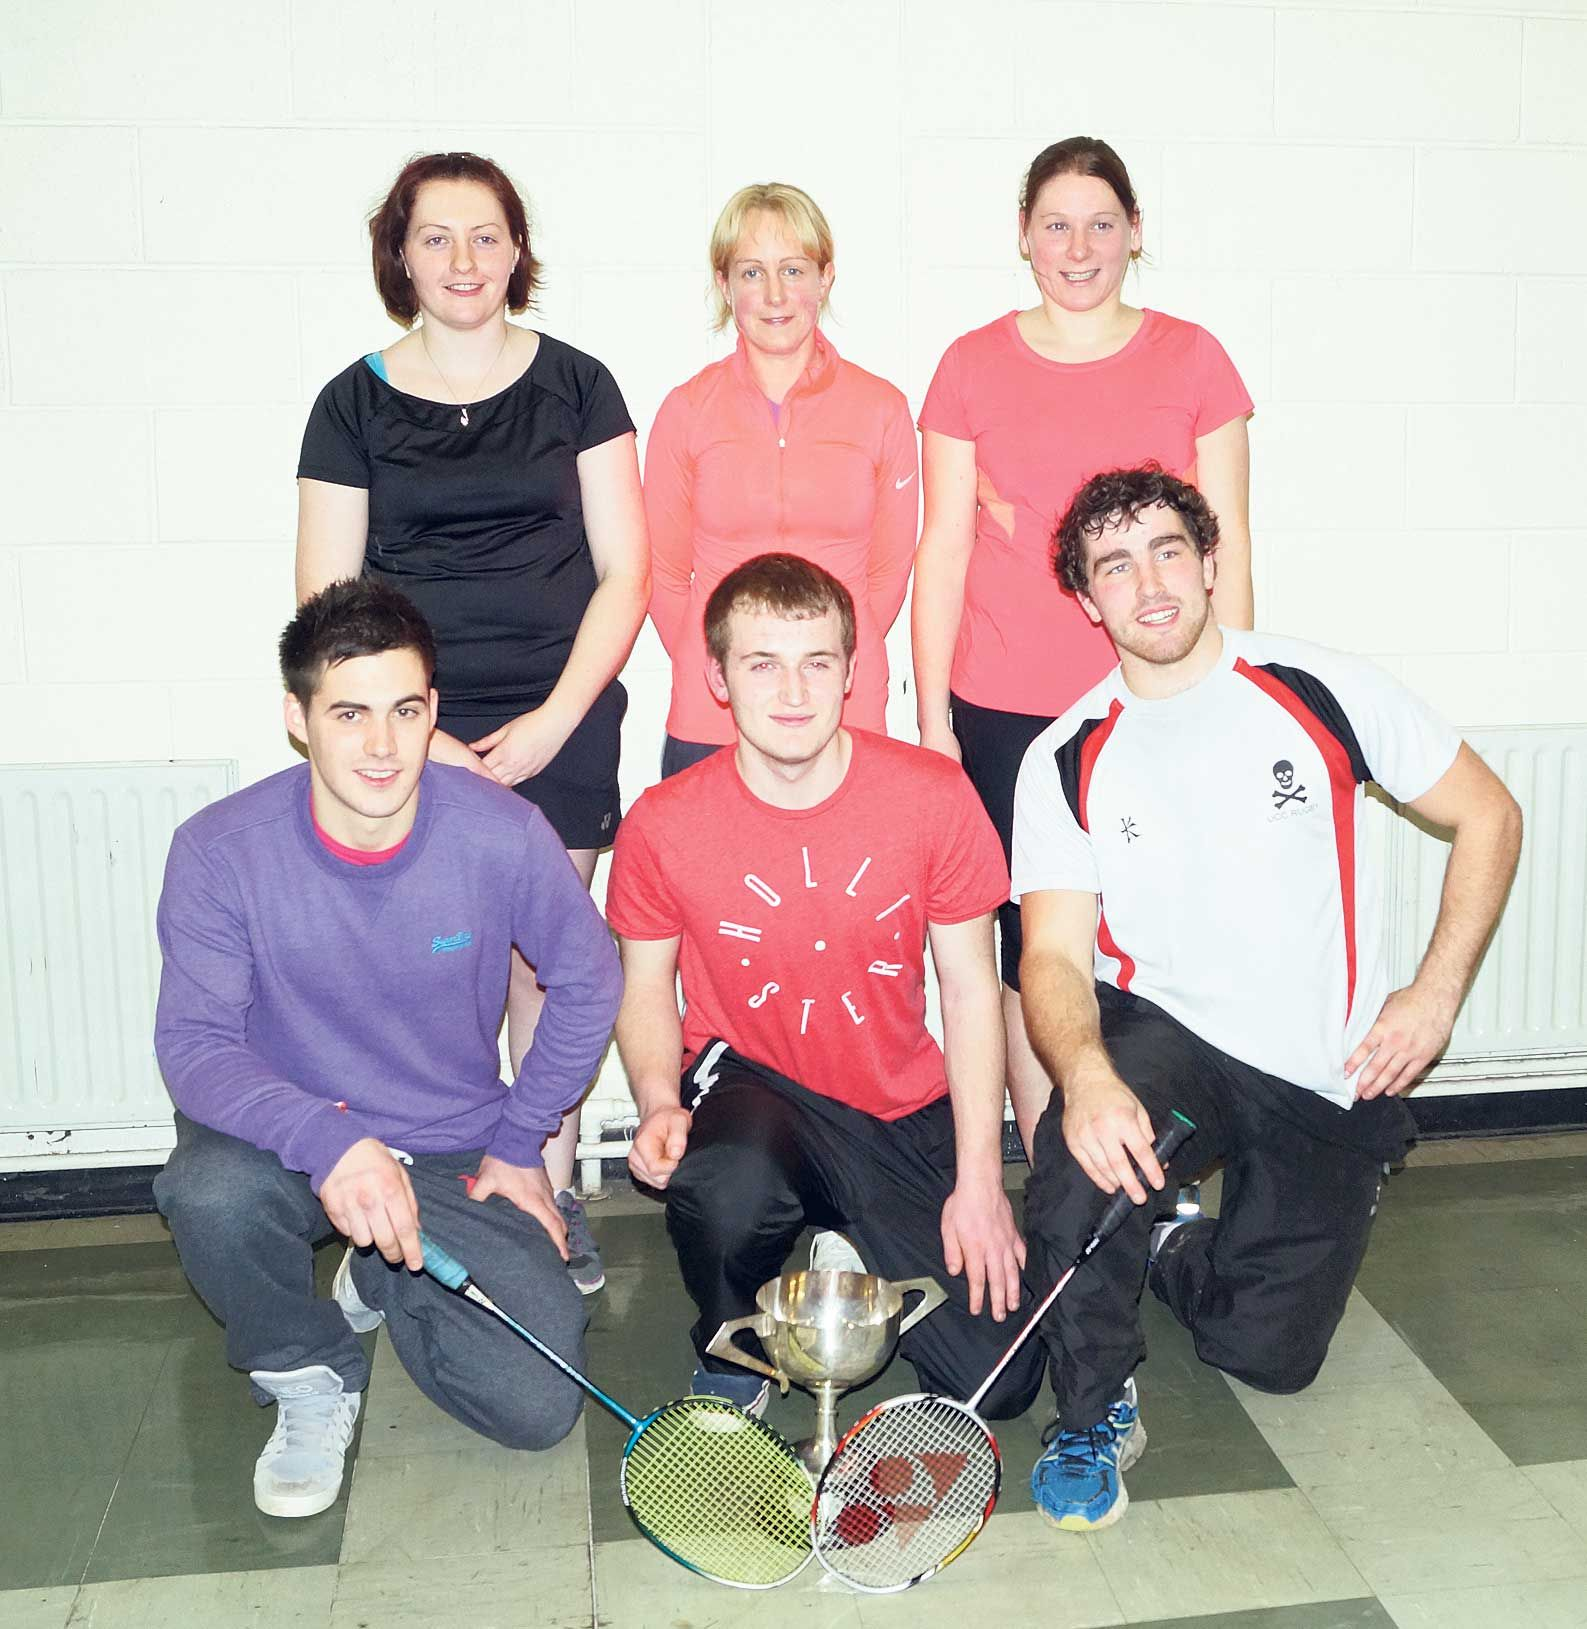 Aces: The St Marys team, back from left, Martina Deane, Catriona Moloney and Susan Kingston (captain); front from left, Nigel Salter, Cian OMahony and Conor Pullen.